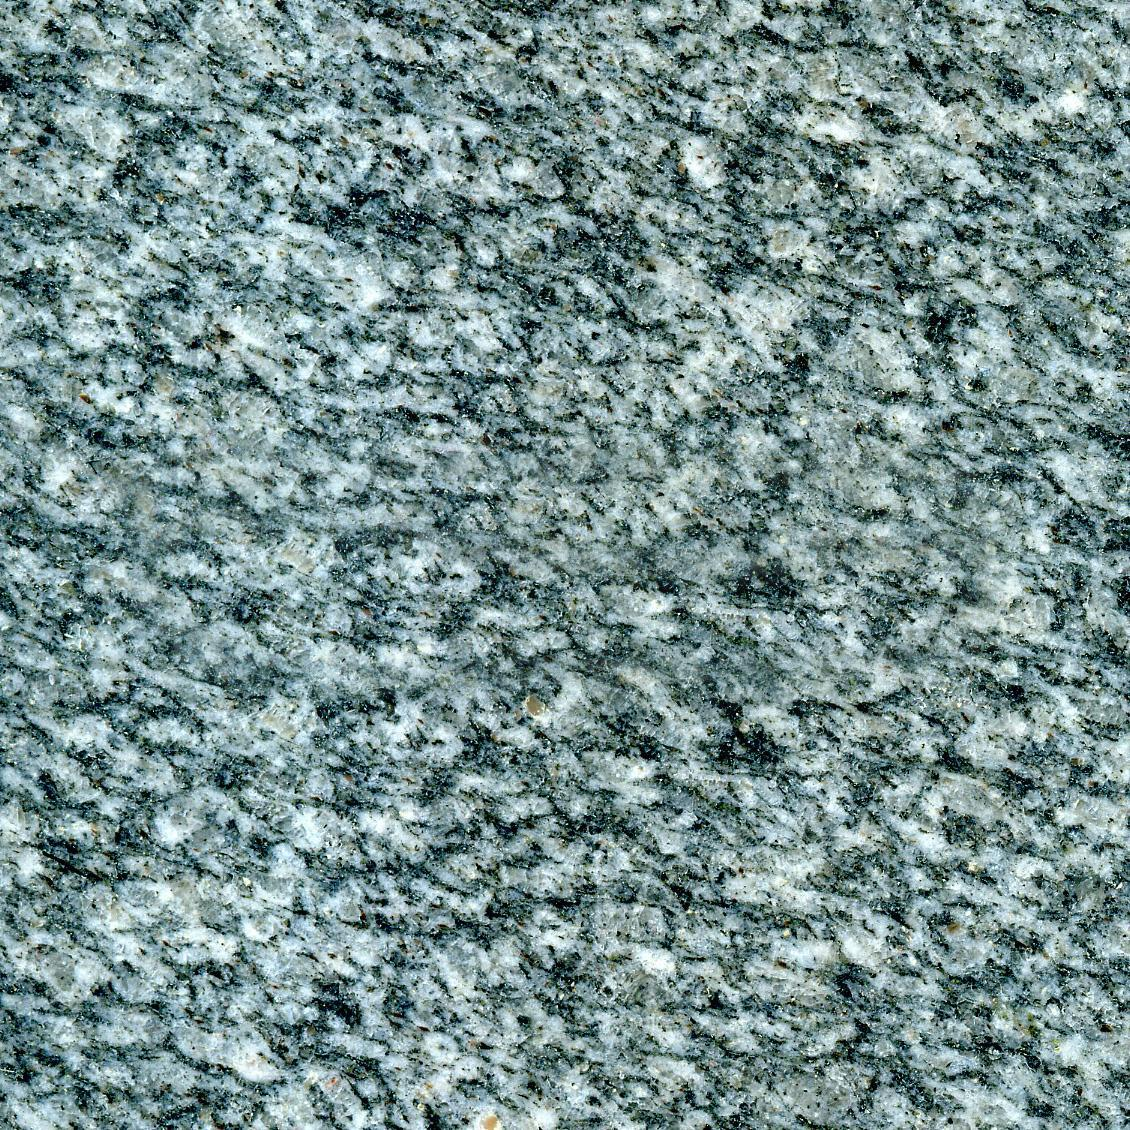 blue granit texture, texture голубого granite, download photo, background